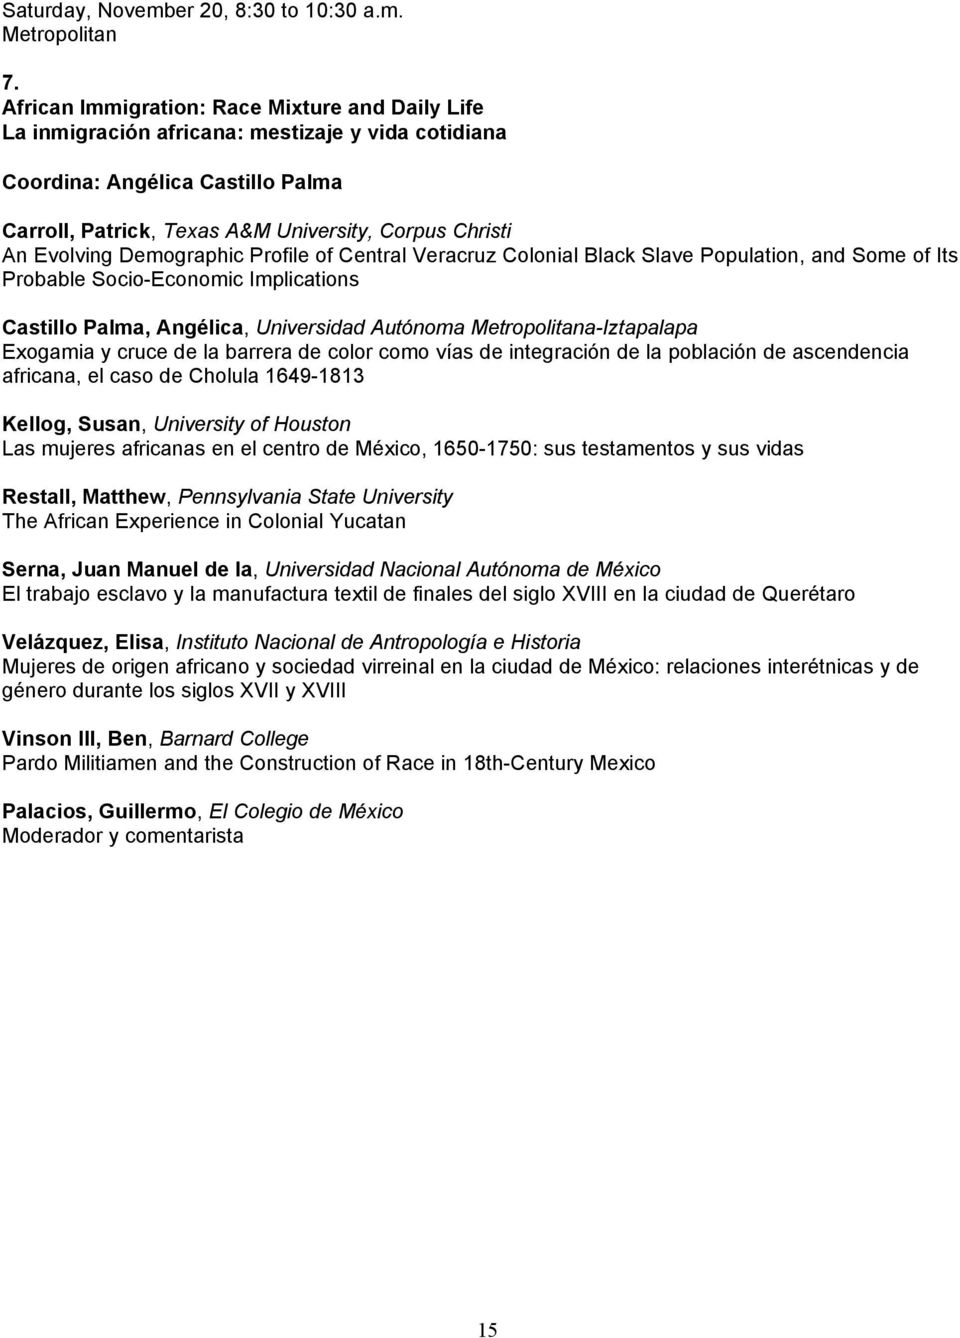 Evolving Demographic Profile of Central Veracruz Colonial Black Slave Population, and Some of Its Probable Socio-Economic Implications Castillo Palma, Angélica, Universidad Autónoma